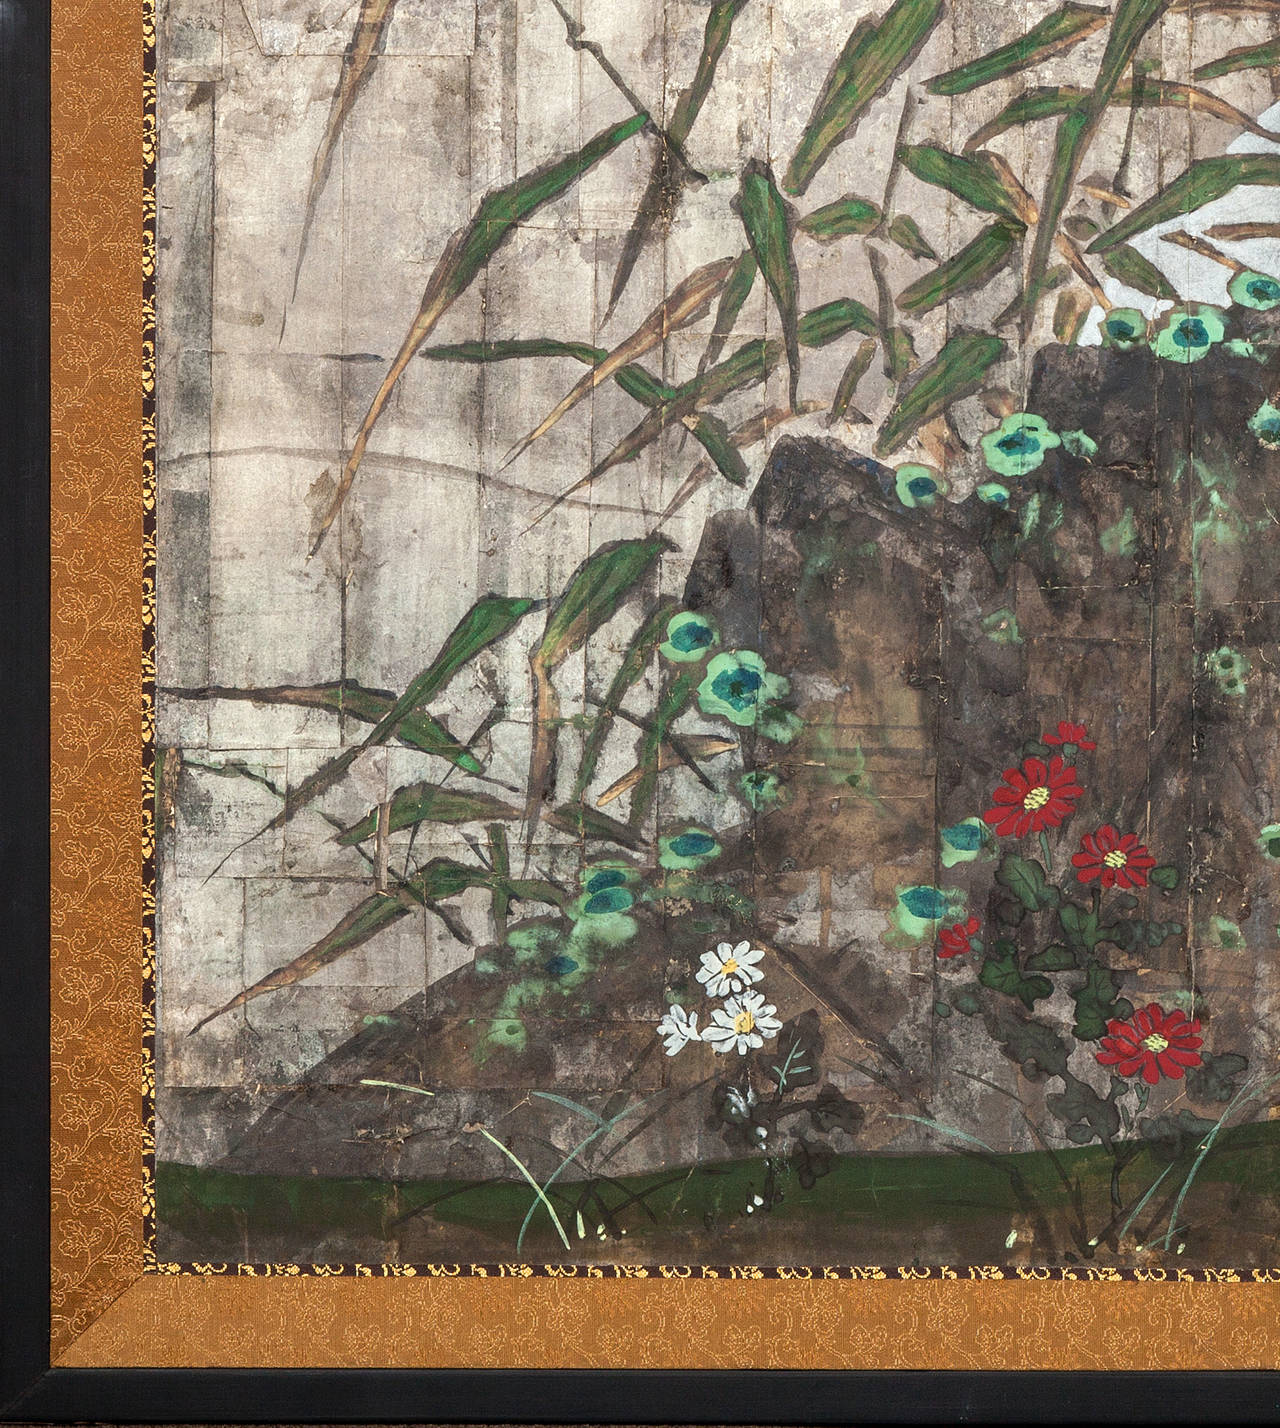 Japanese Two Panel Screen: Moon Rising Through Bamboo On Silver Leaf,  Meiji period painting (1868 - 1912) of the moon rising on the horizon with a garden stone in the foreground.  Lichen and small flowers growing on and around the stone.  Mineral